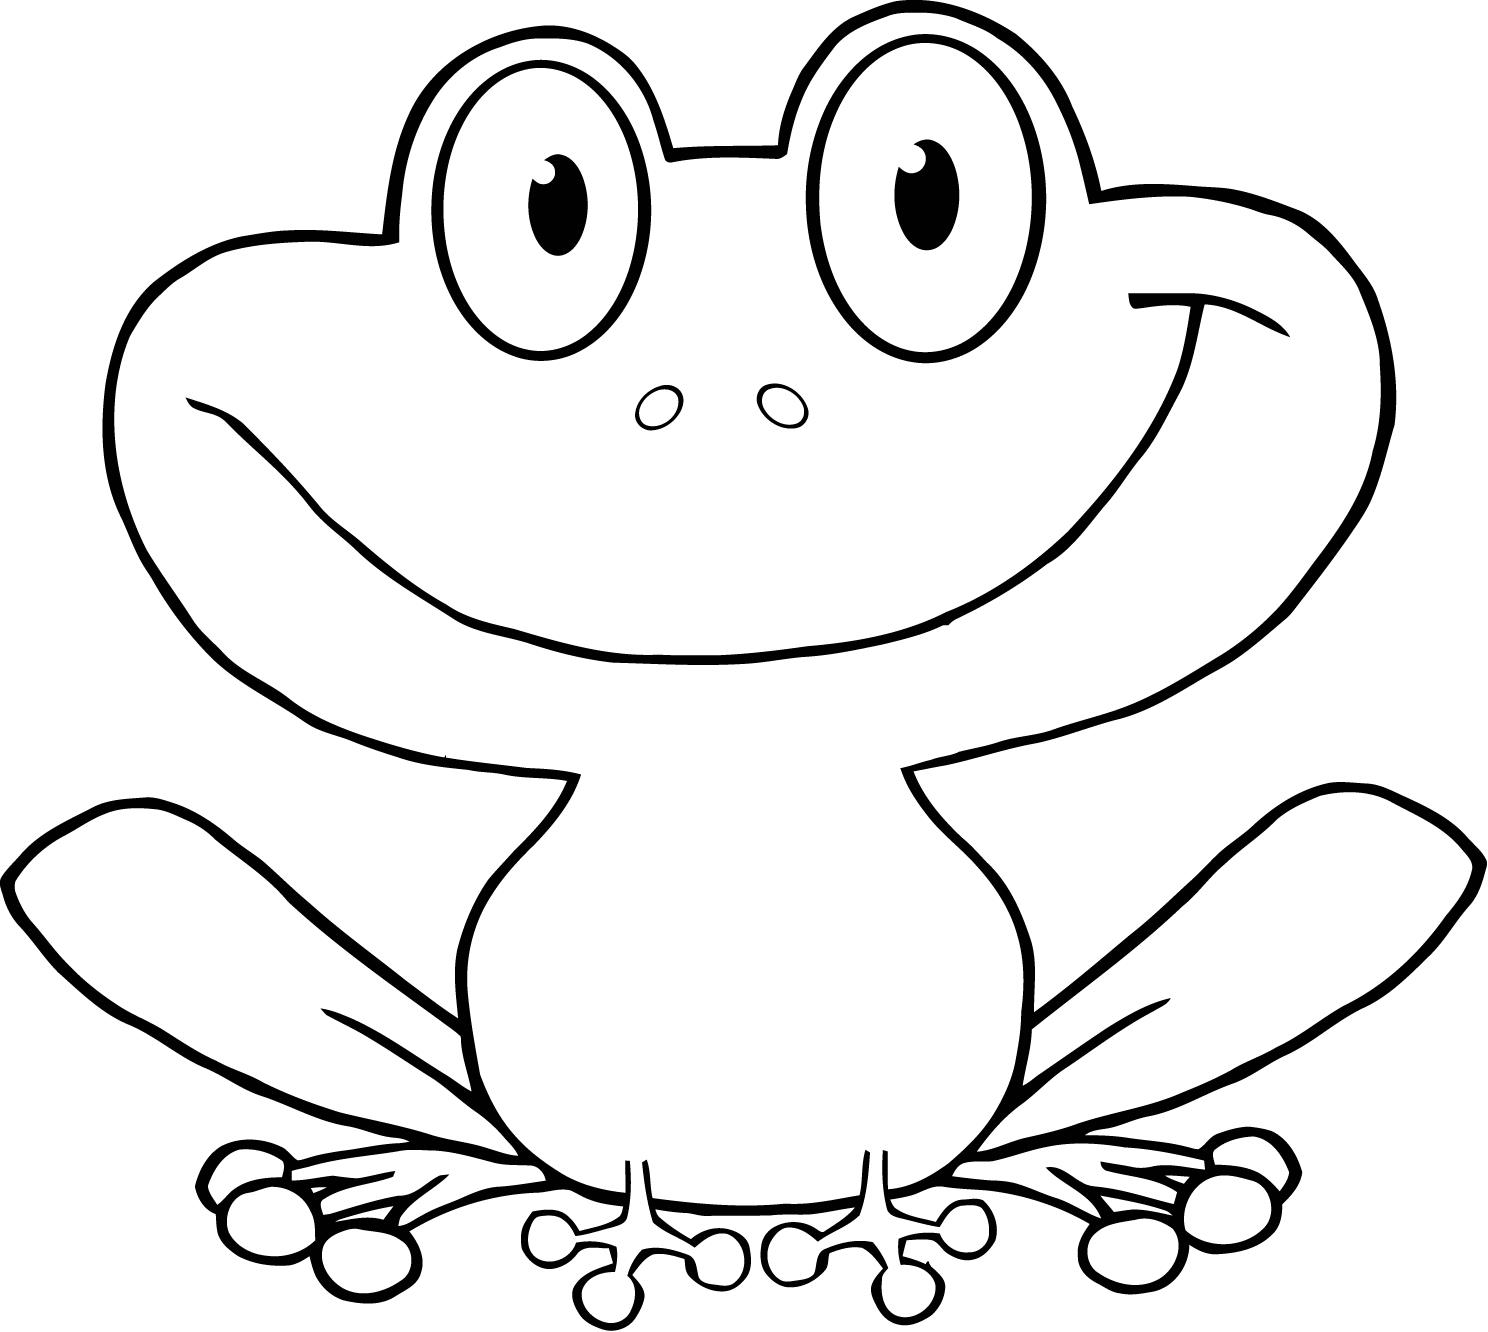 1488x1332 Printable Cartoon Cute Frog Character For Kids